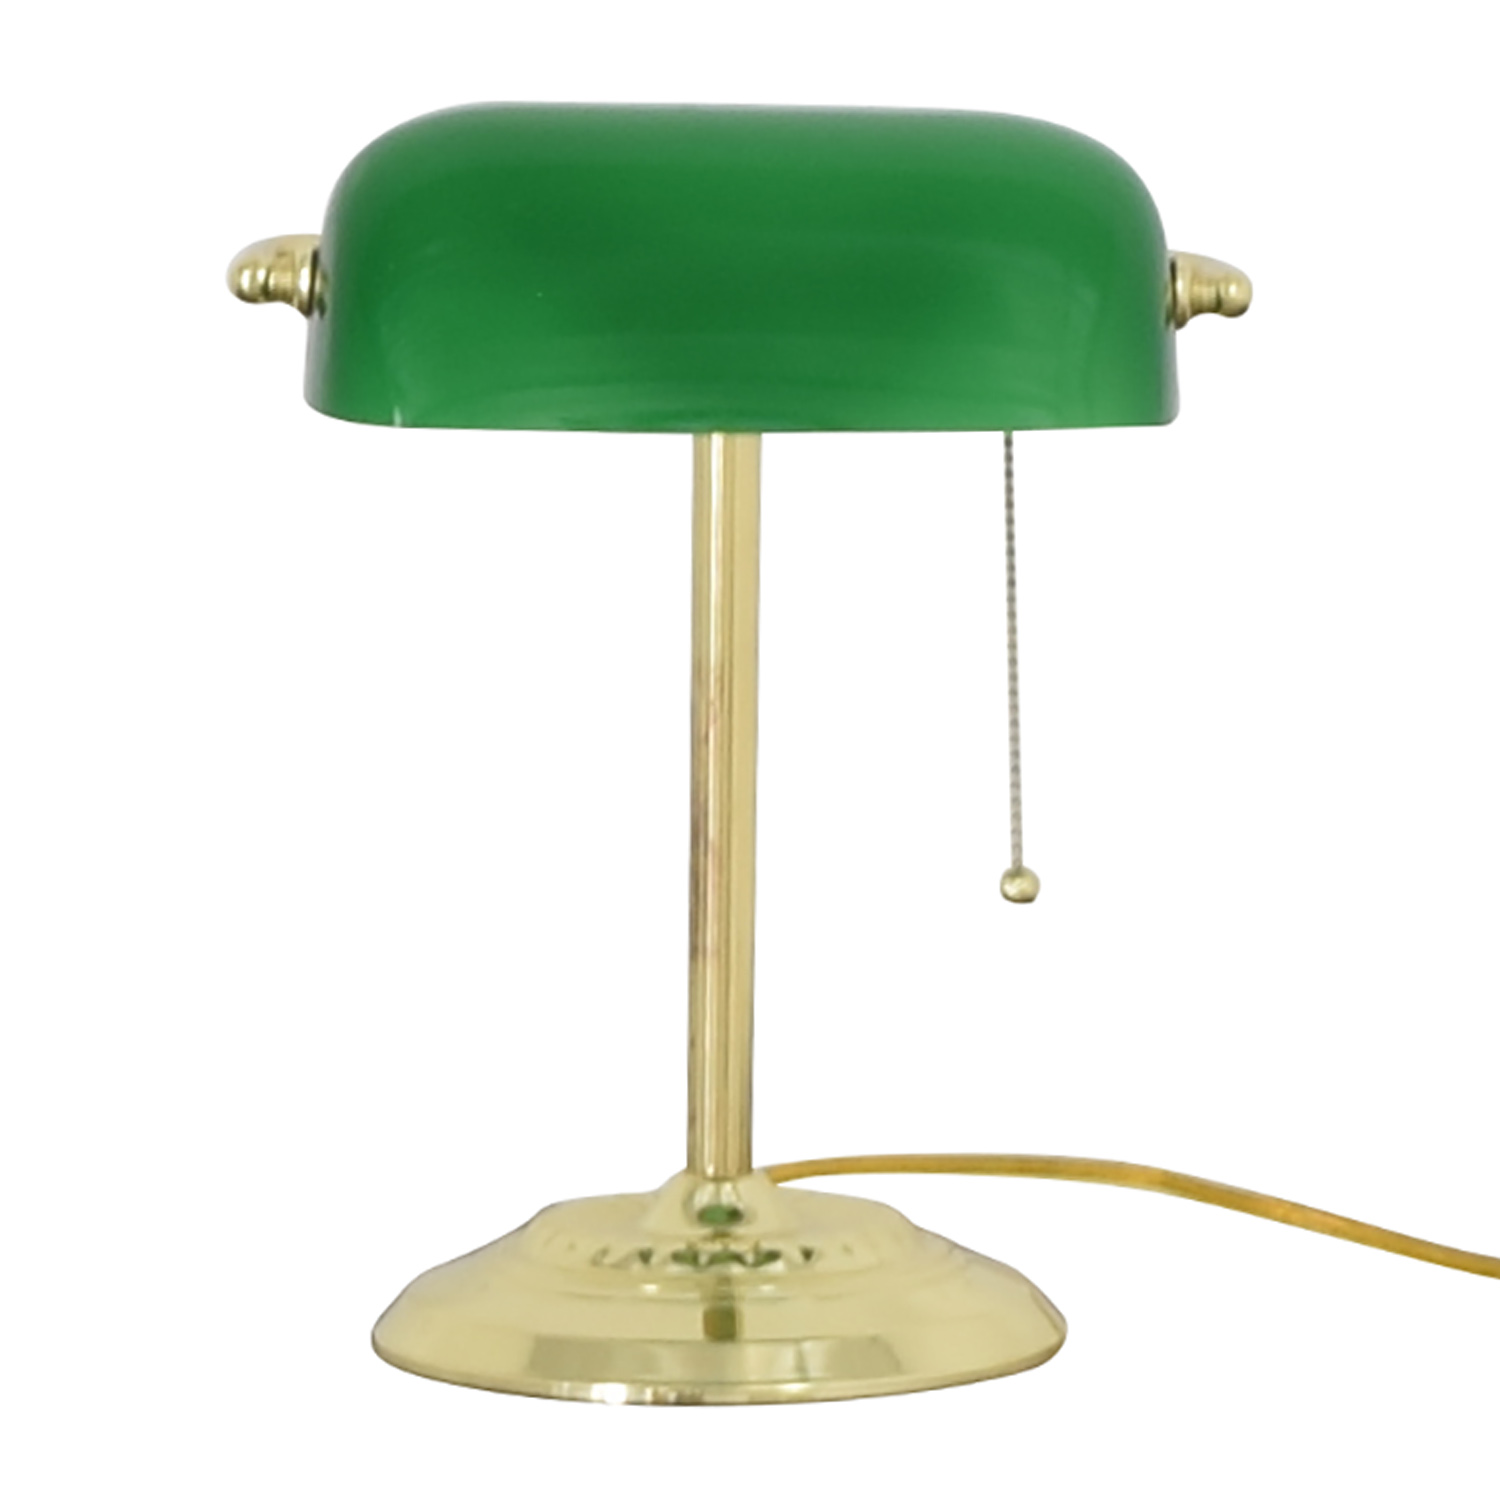 Green and Gold Desk Lamp nj